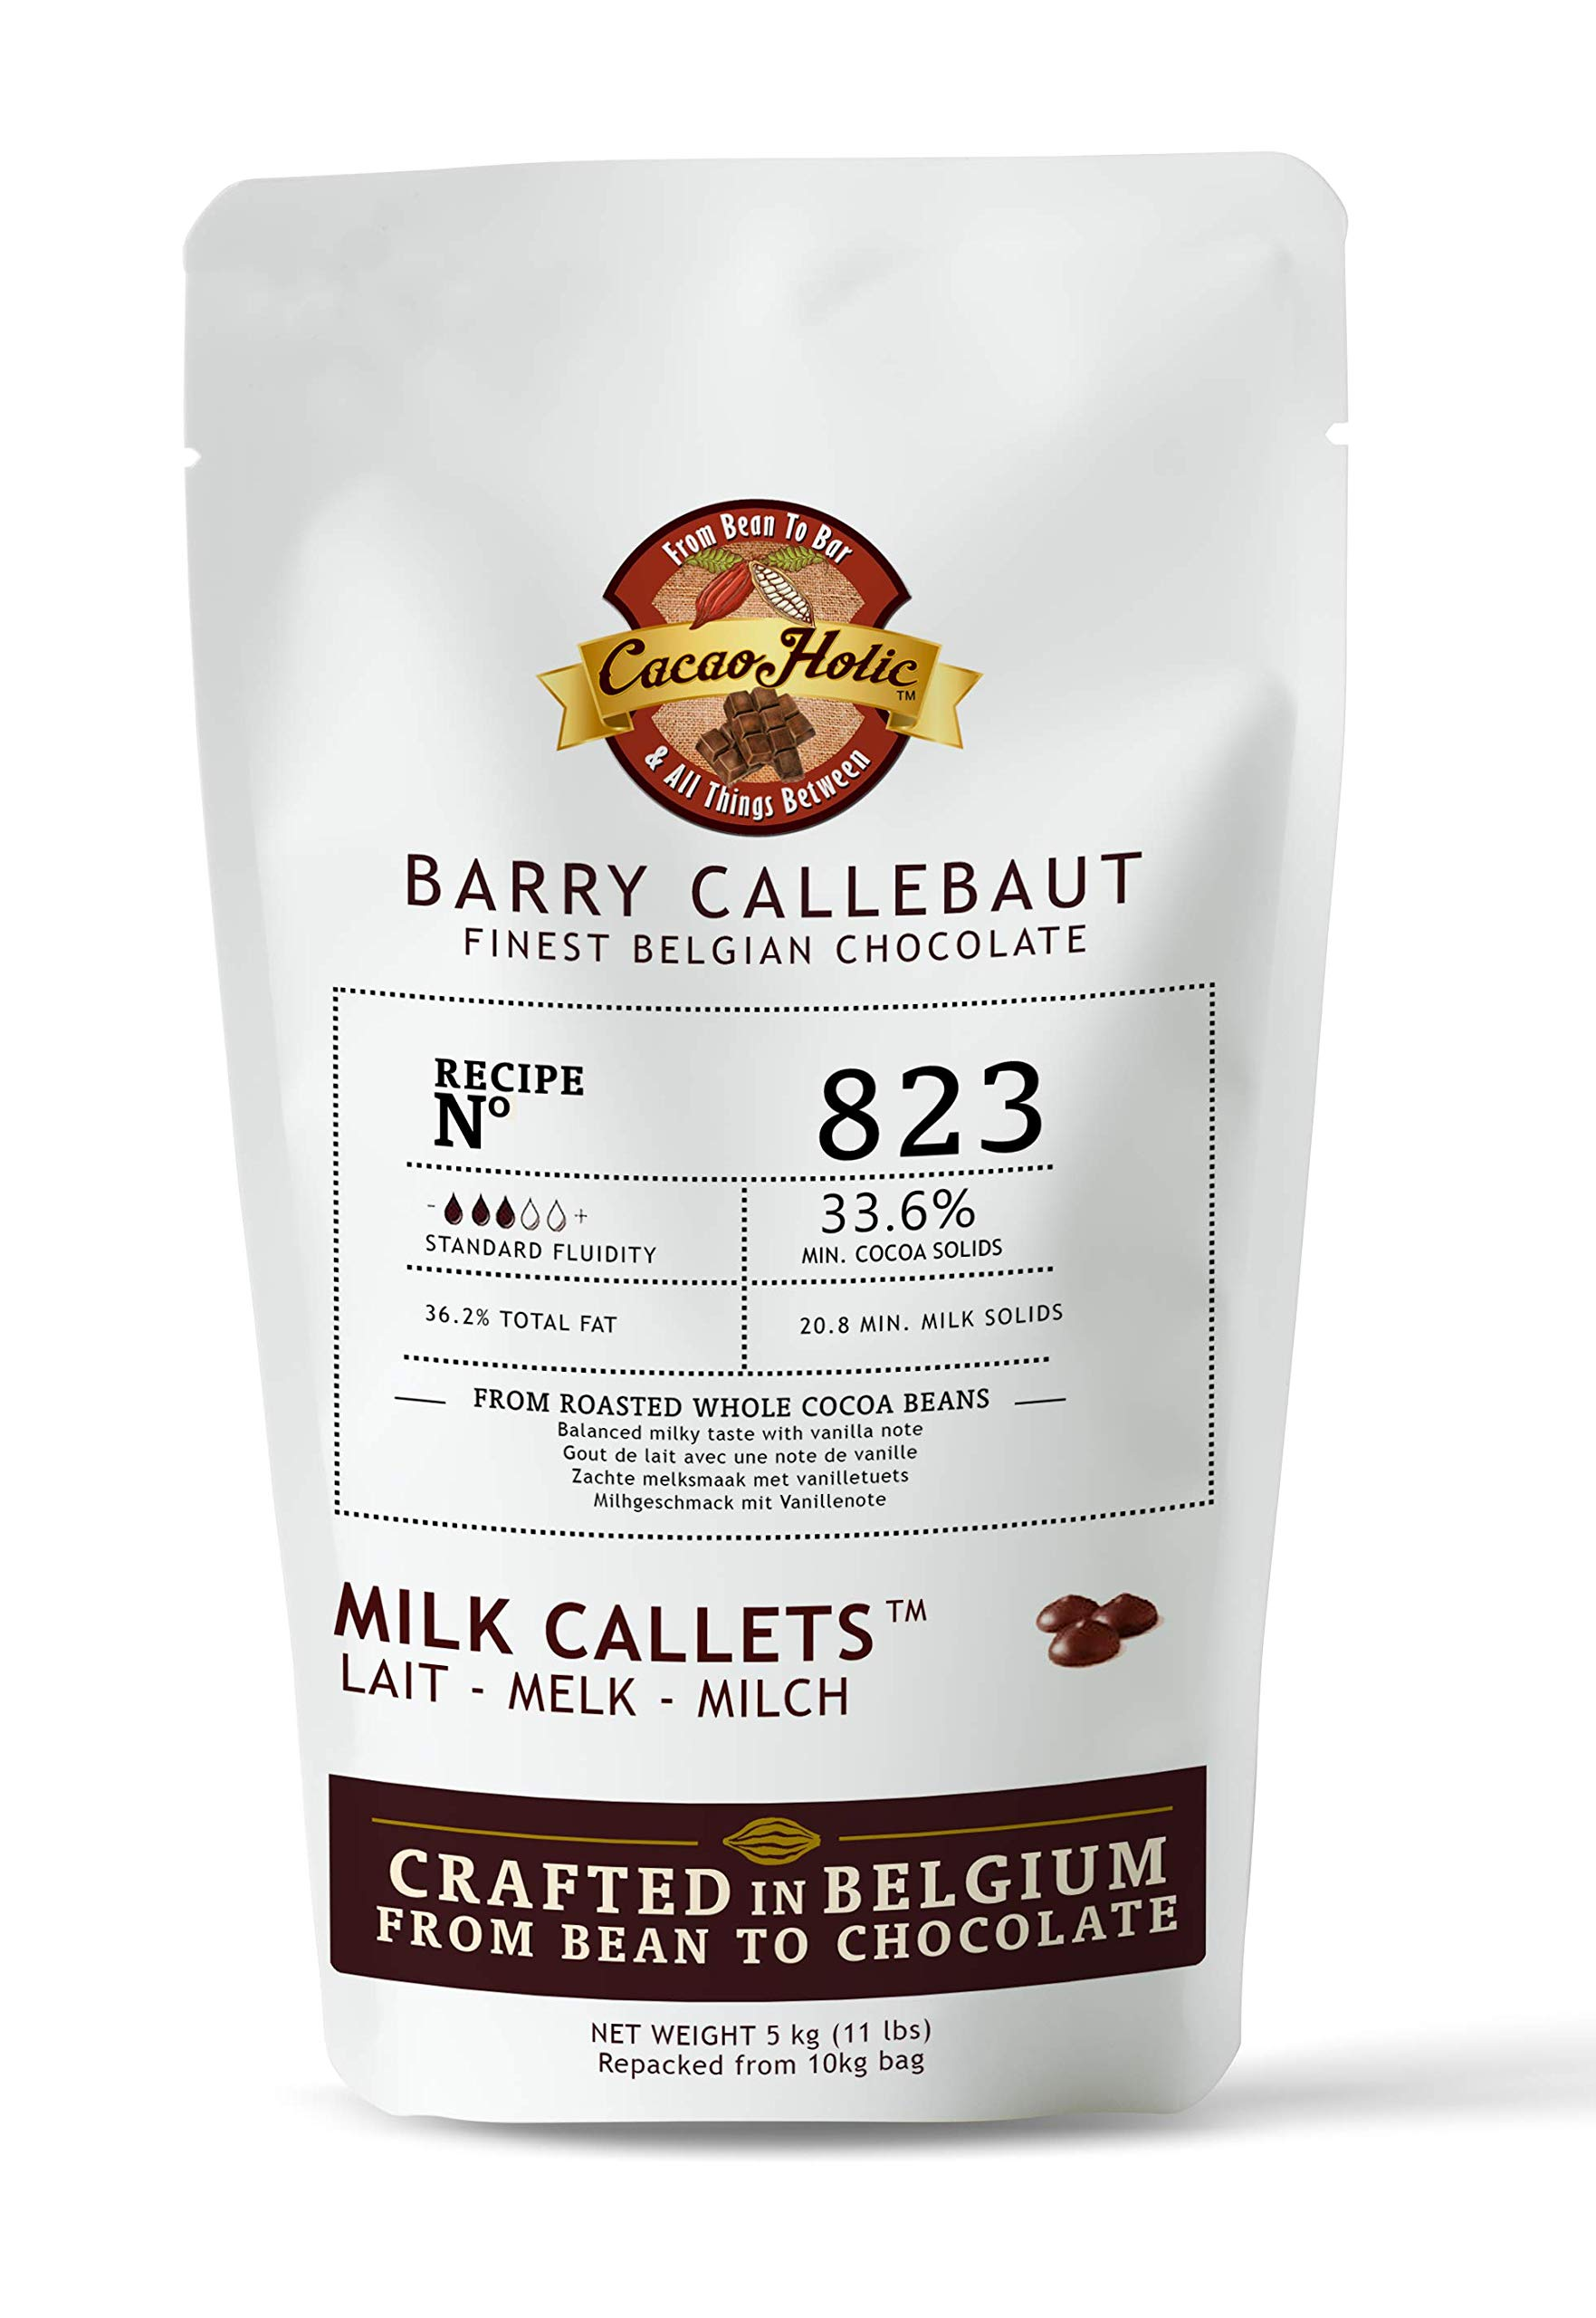 5kg Barry Callebaut Milk Chocolate Callets | 33.6% Cocoa | Barry Callebaut Chocolate Chips 823NV-595 | Cacaoholic Resealable Stand Up Pouch -11 LB Net Weight